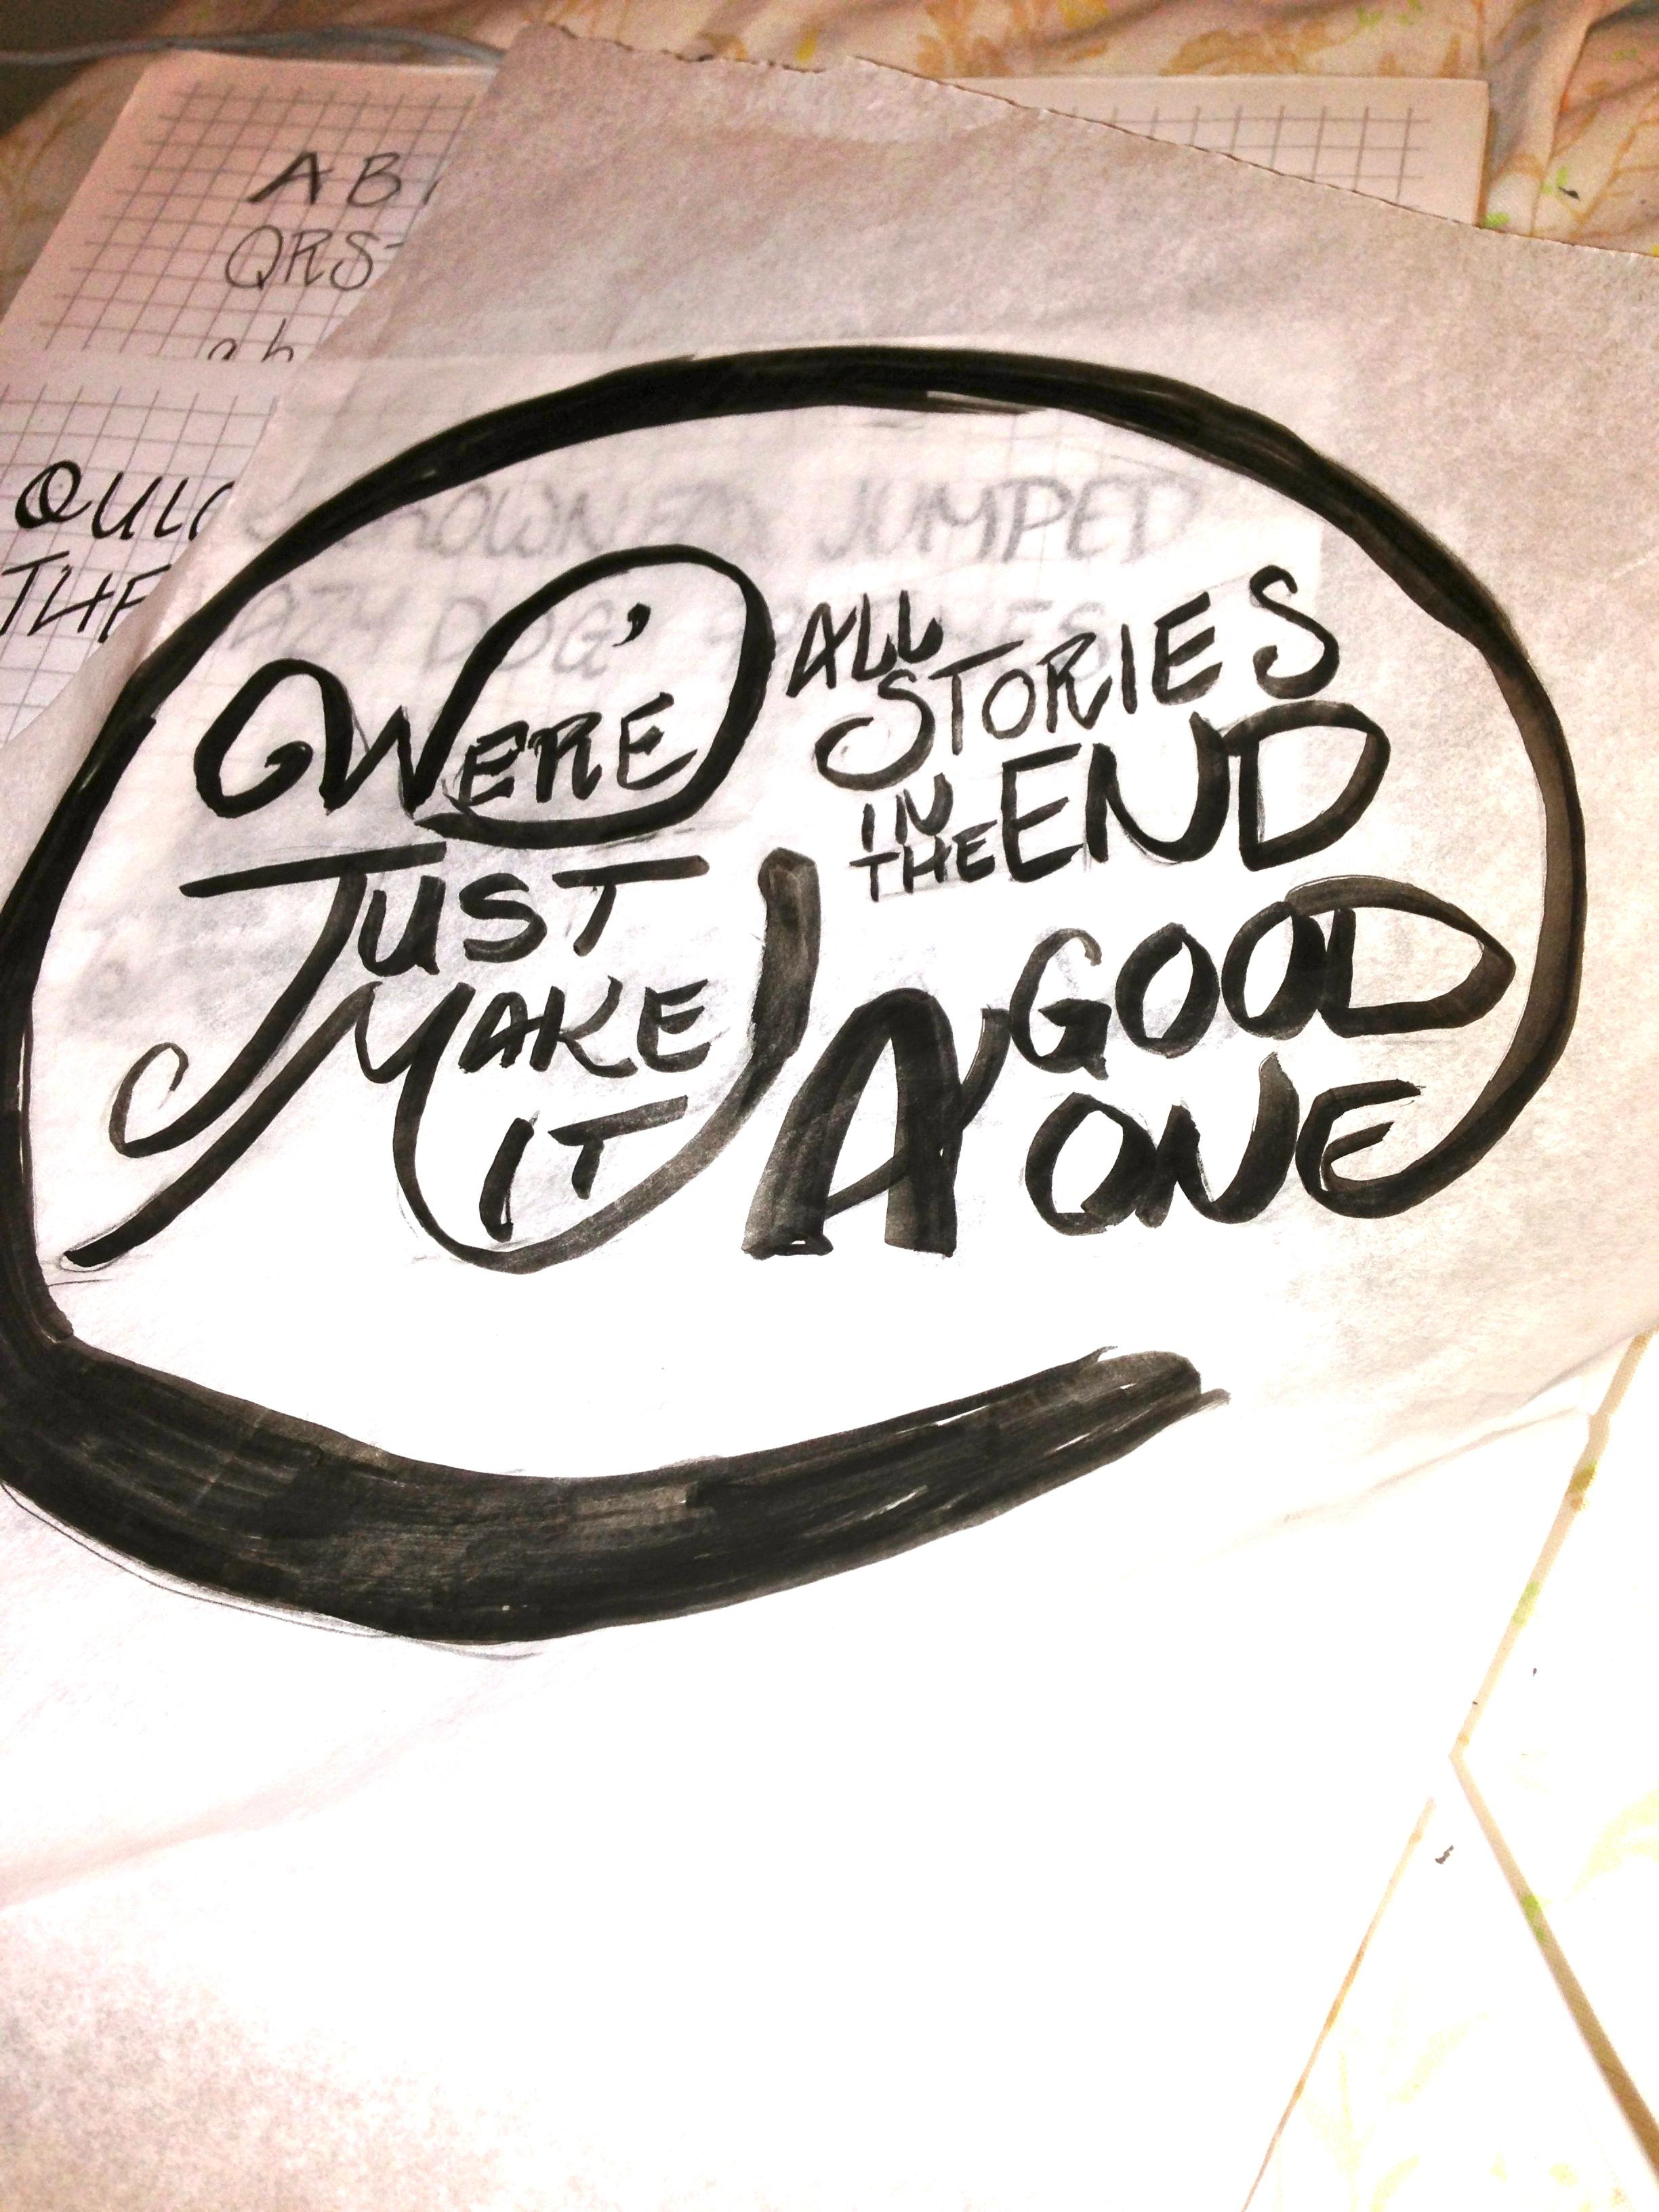 We're all stories in the end. Make it a good one eh? - image 3 - student project